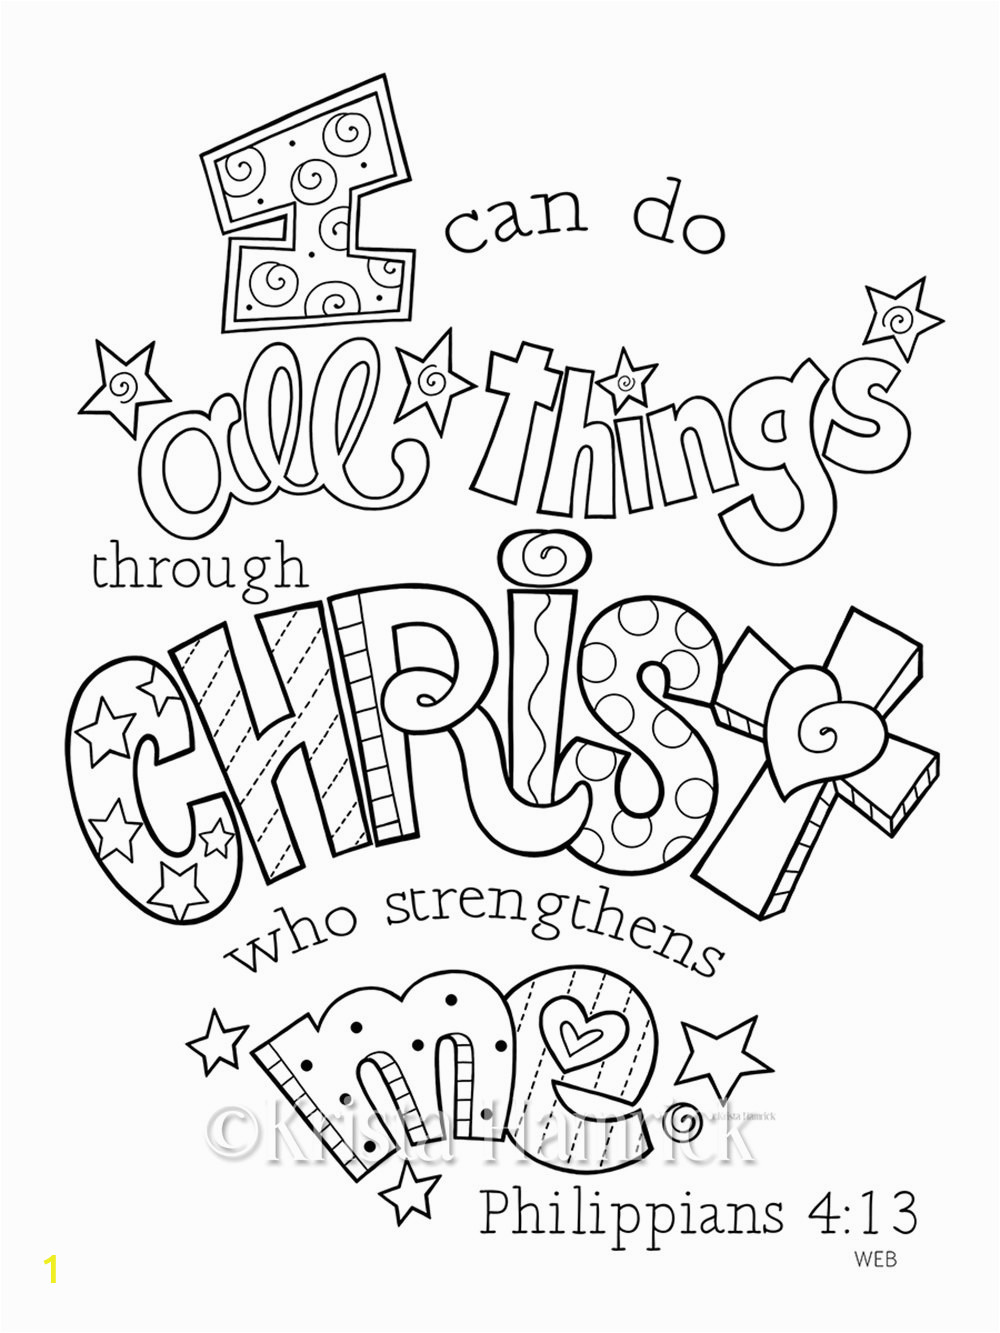 I Can Do All Things Coloring Page I Can Do All Things Through Christ Coloring Page 8 5×11